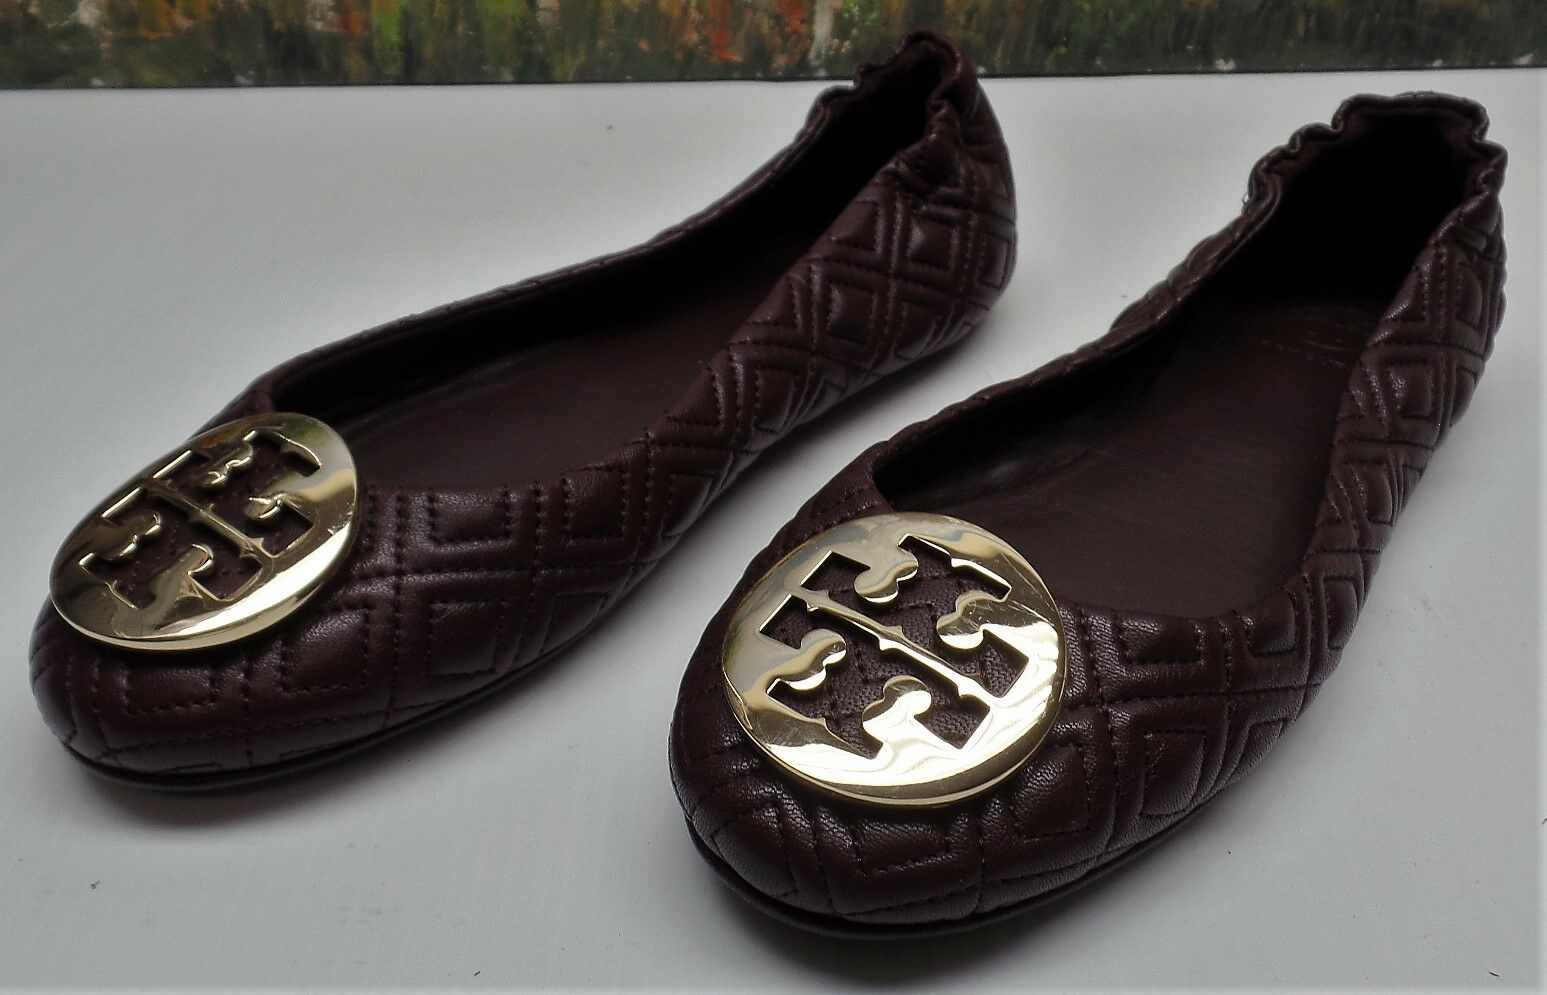 Tory Burch Quilted Minnie Flat - Size 6.5 -  238